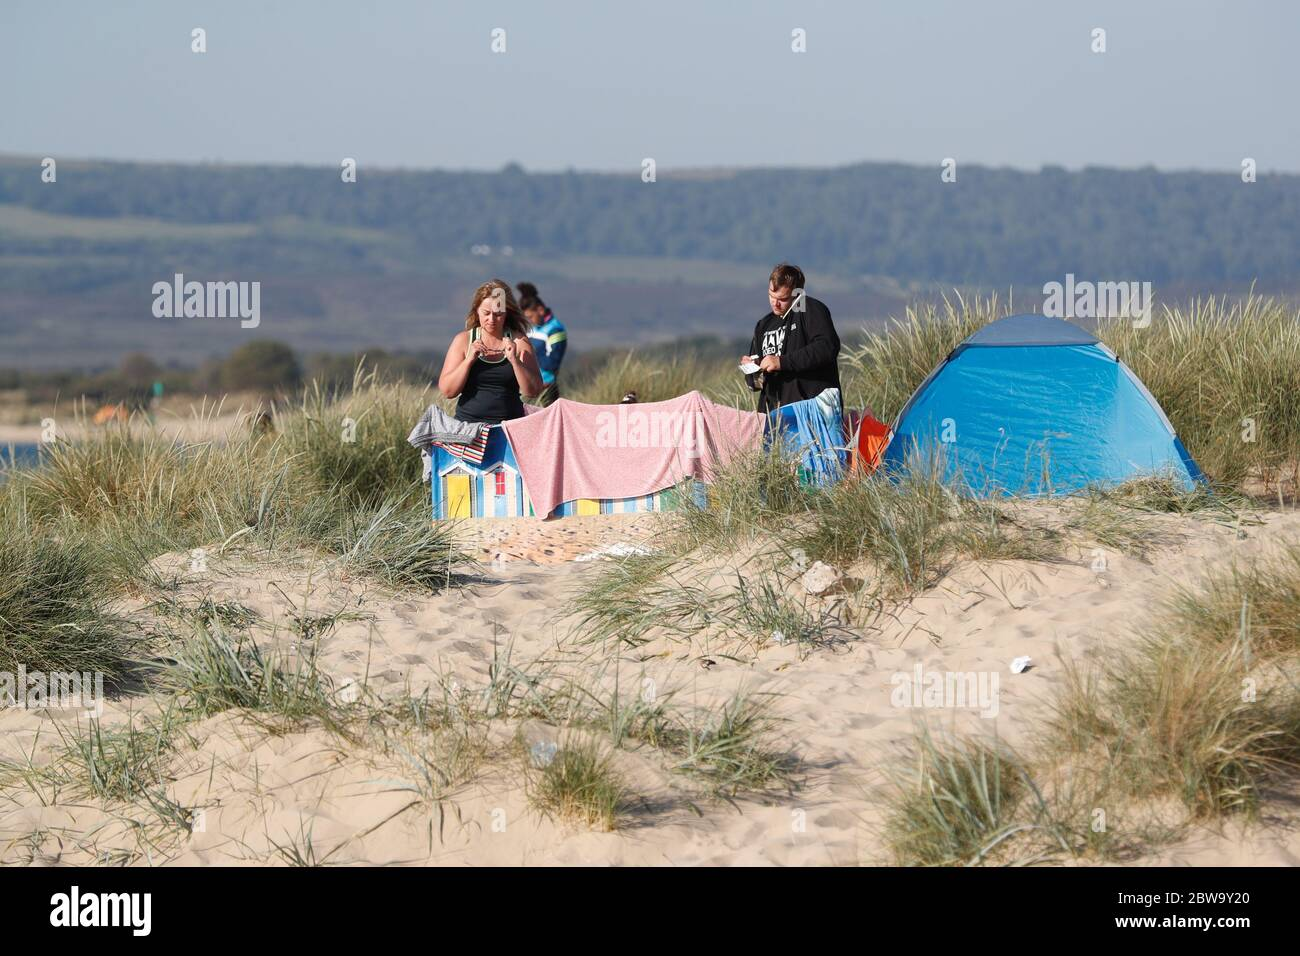 Poole, UK. 31st May 2020.    The Early birds  setting up for the day at Sandbanks beach, Poole, Dorset Credit: Richard Crease/Alamy Live News Stock Photo